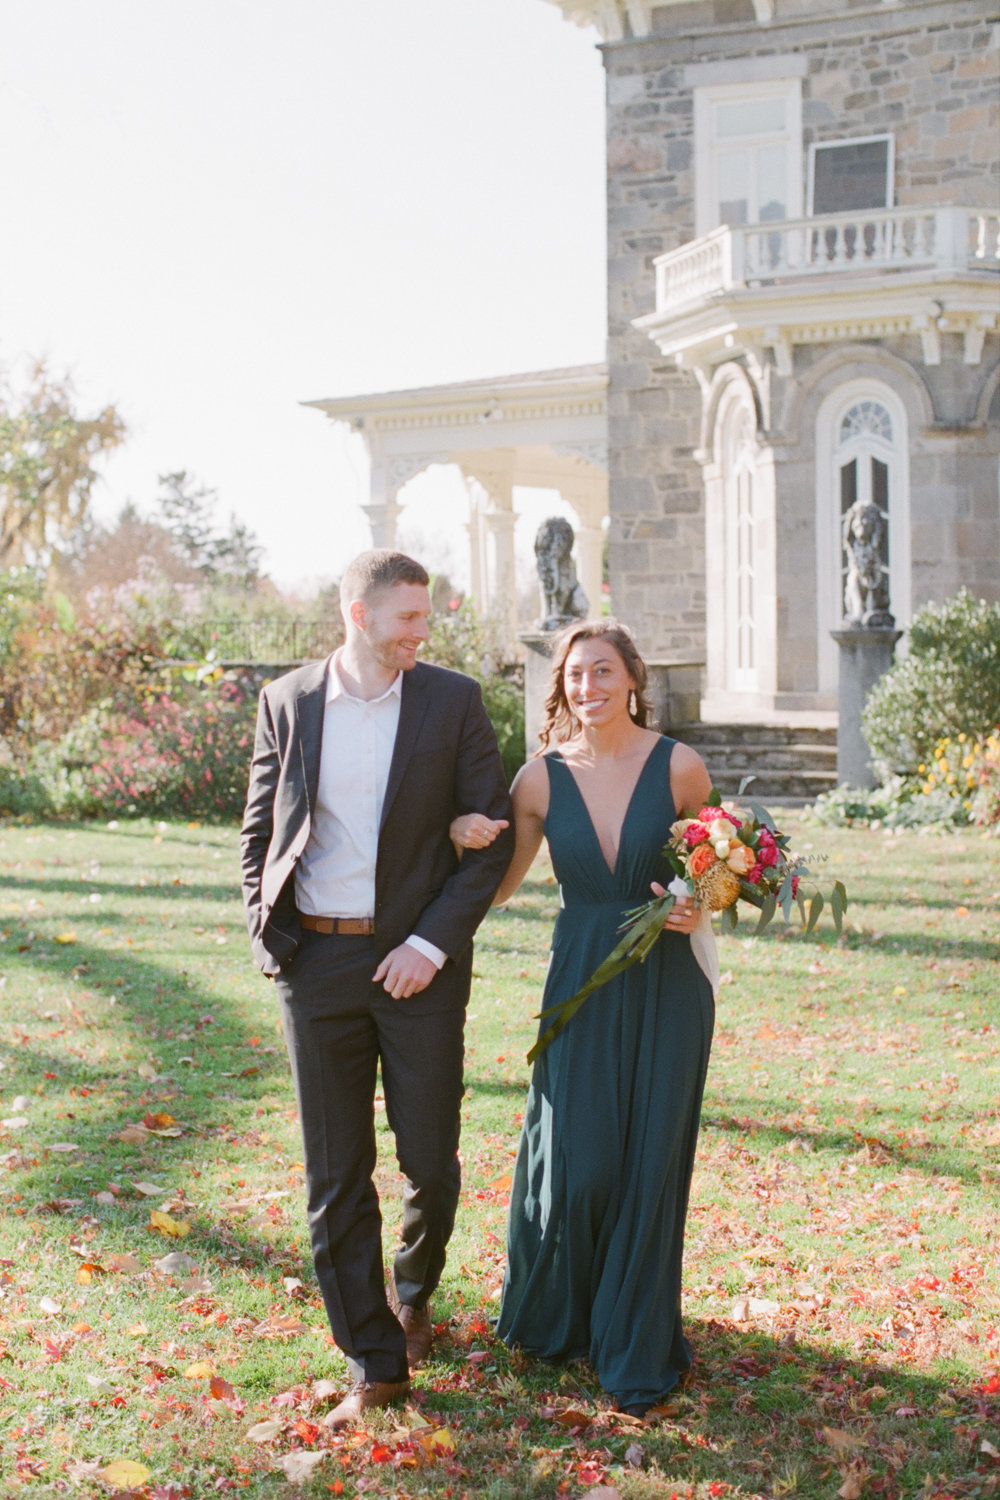 Cylburn-Arboretum-Baltimore-Maryland-Fall-Wedding-Photographer-Katie-Howell-Photography-120615030031